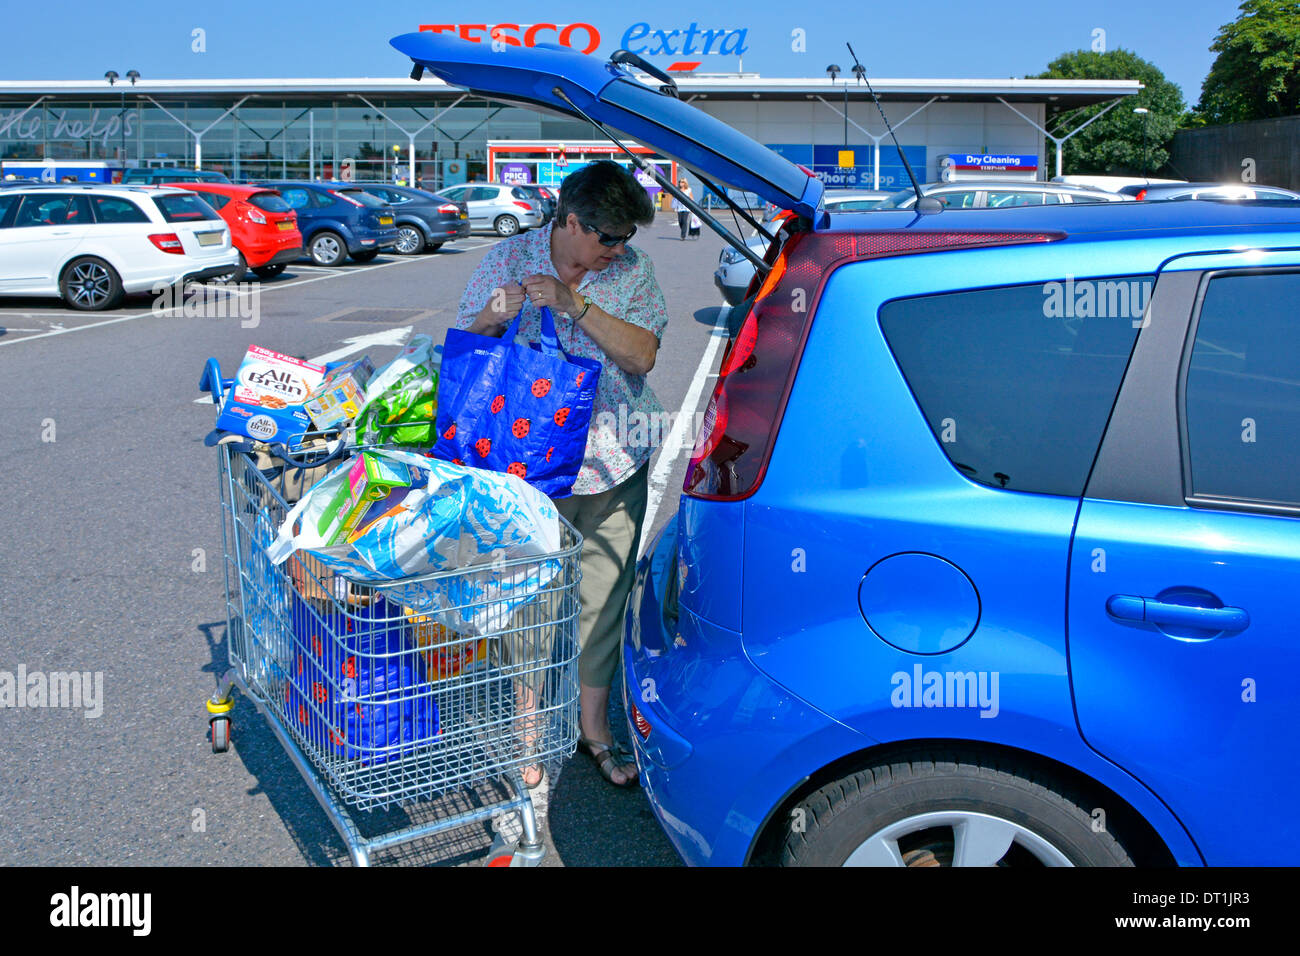 Tesco Extra supermarket store free car park and mature woman loading food shopping into hatchback car - Stock Image